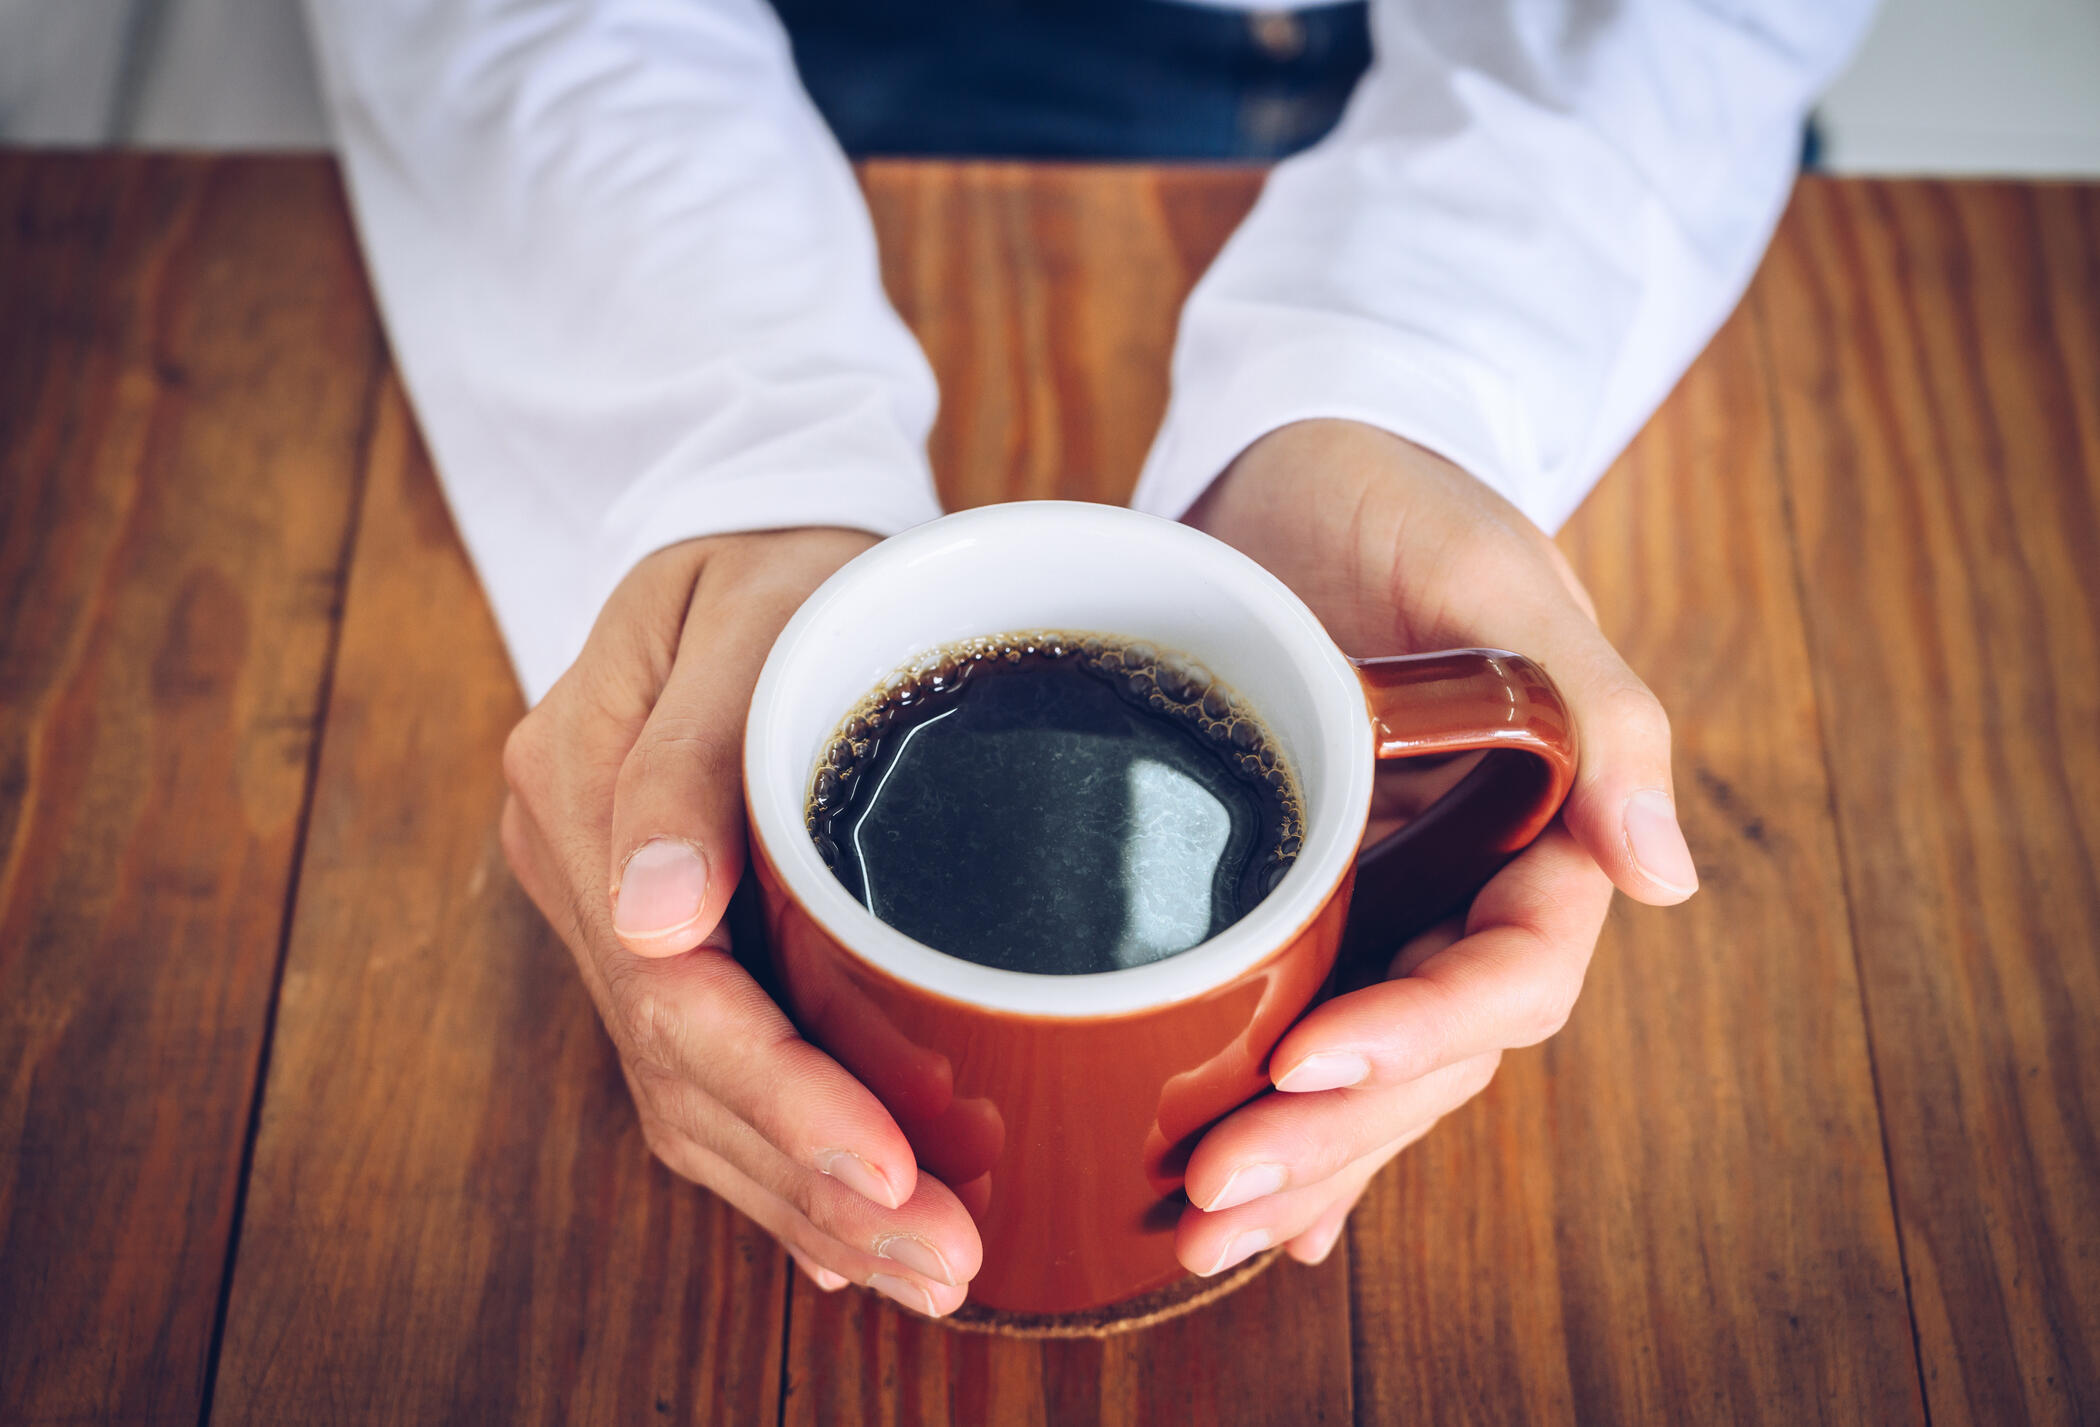 aerial view of a person holding a cup of black coffee with both hands